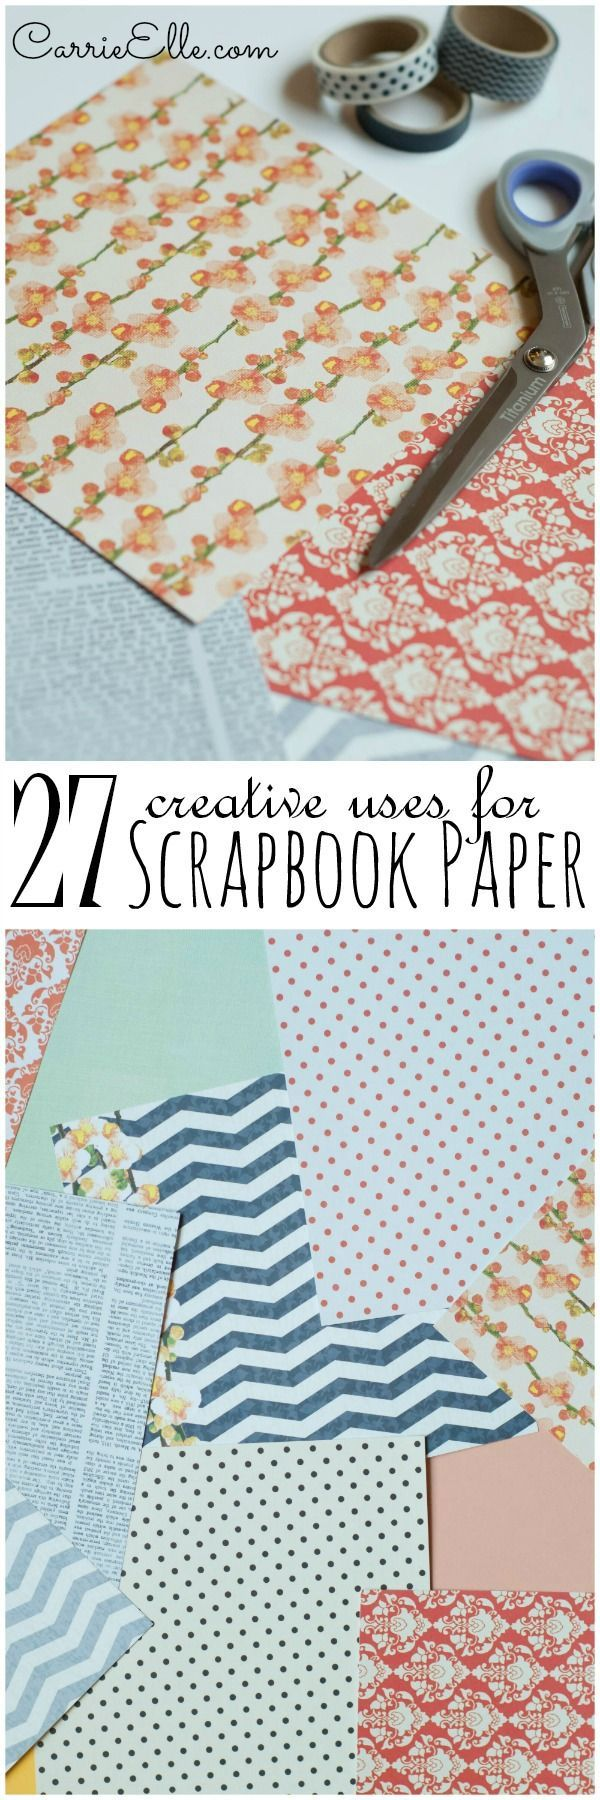 How to put scrapbook paper on wood - 27 Uses For Scrapbook Paper